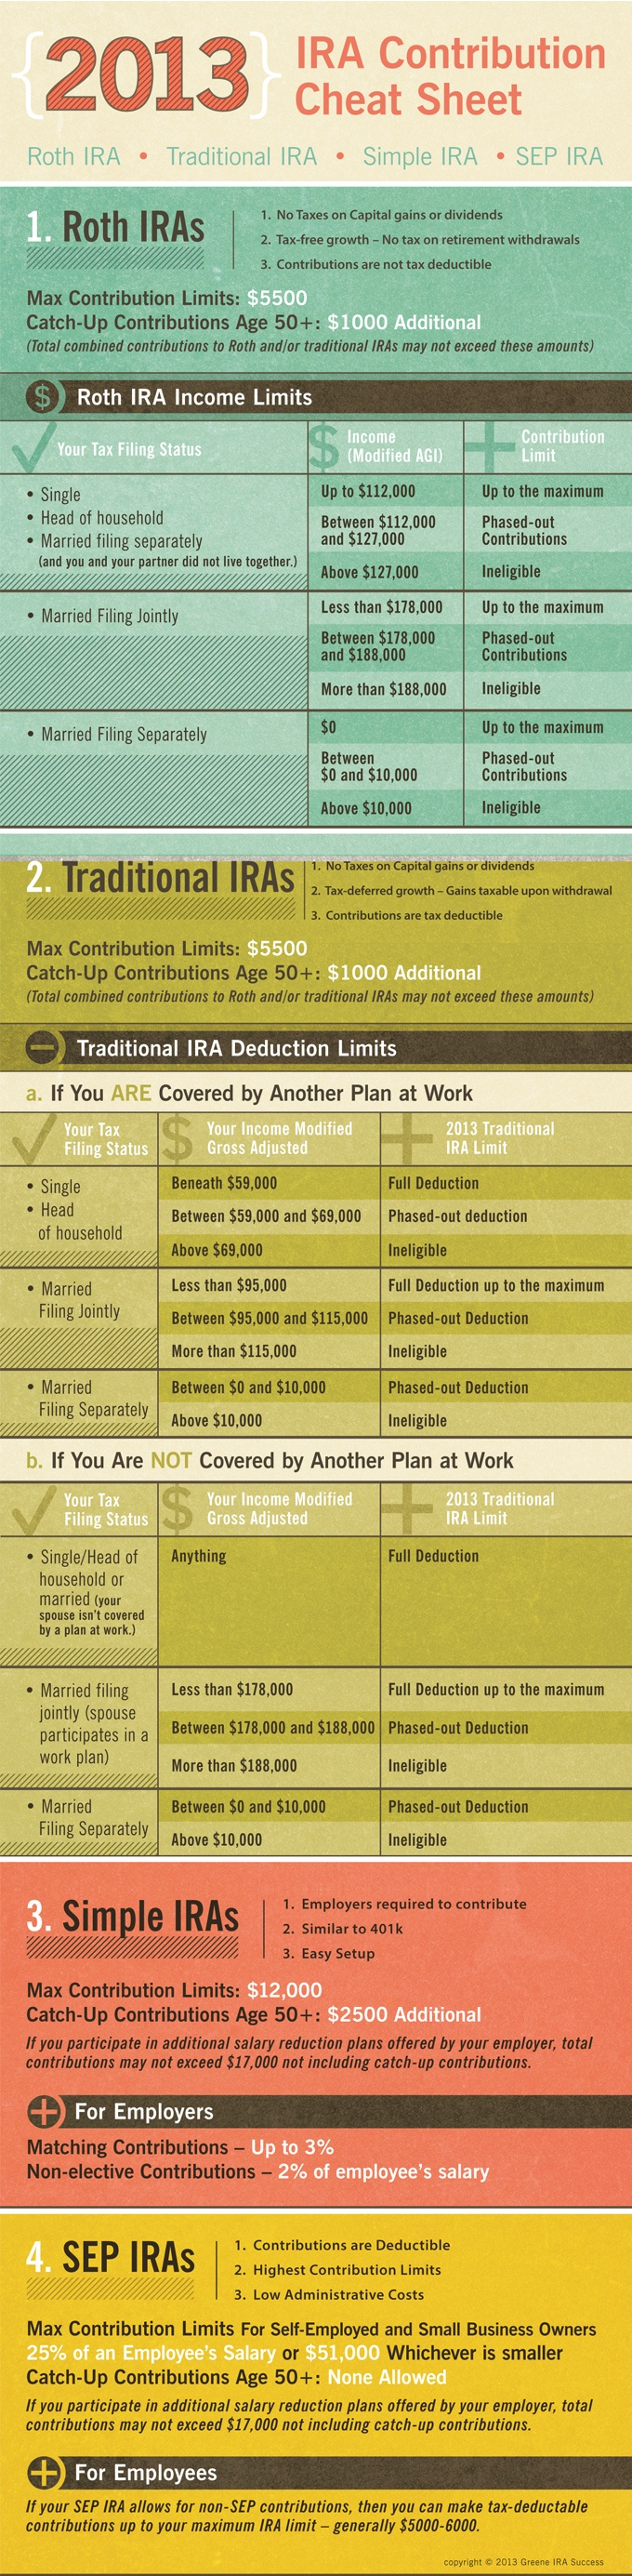 Ready for your 2013 IRA Contributions? Last year, the Internal Revenue Service made many changes that effect your maximum contributions for all types of retirement accounts, including Roth IRAs, Traditional retirement accounts, SEP accounts, and Simple IRAs. Stay up to date on all the rules and deadlines with this super handy and attractive chart below. [...]